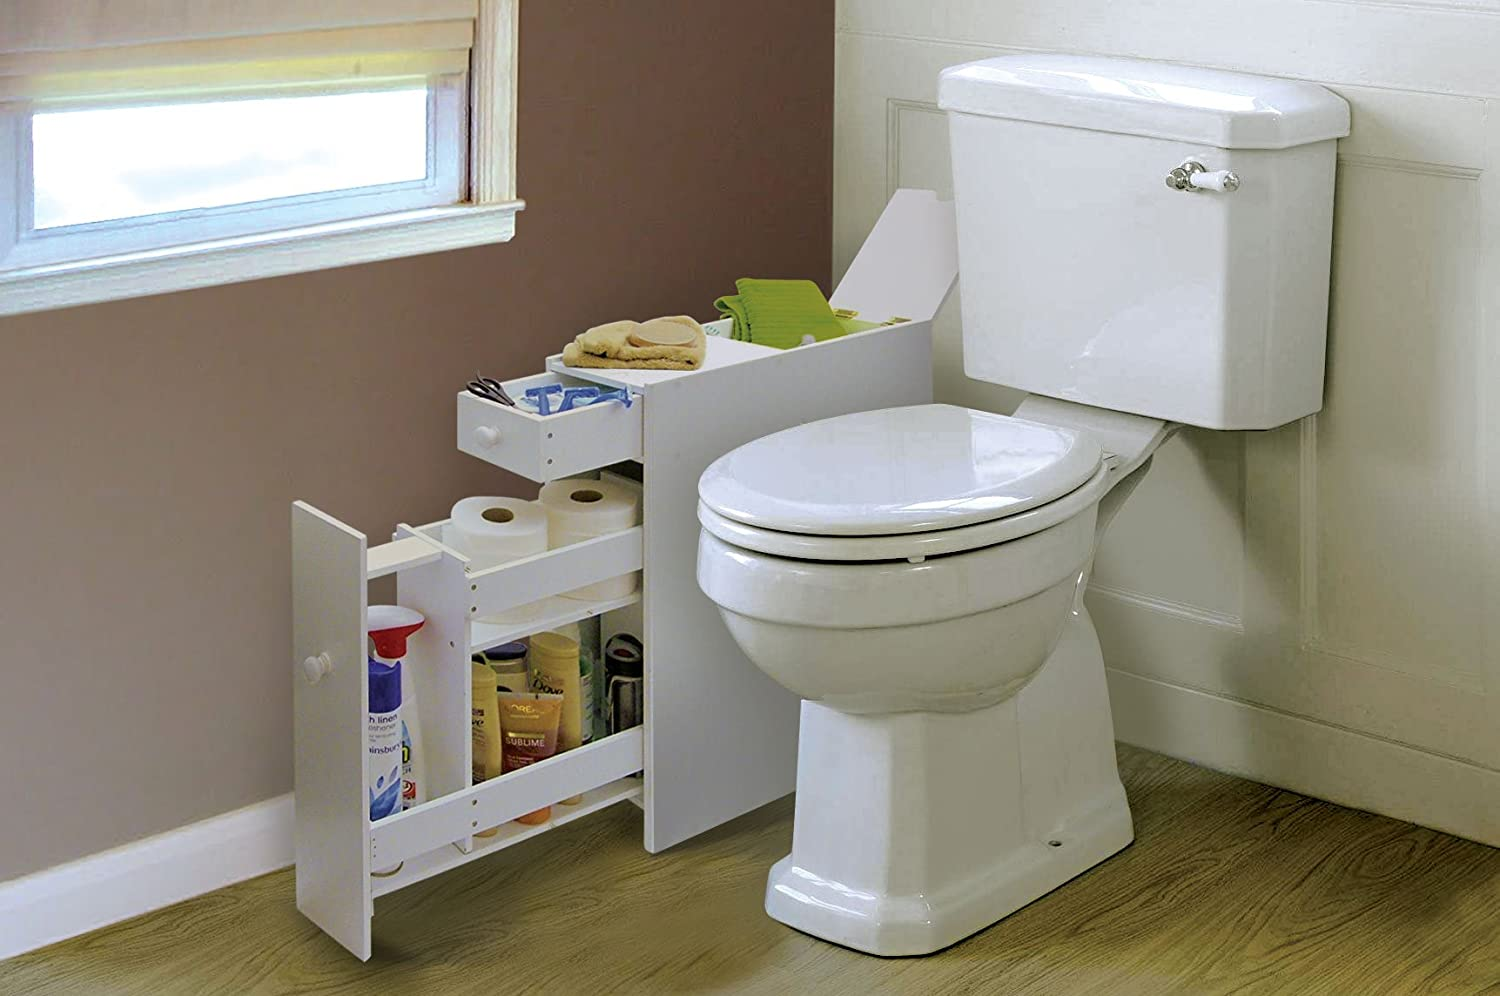 Slimline Space Saving Bathroom Storage Cupboard: Amazon.co.uk: Kitchen &  Home